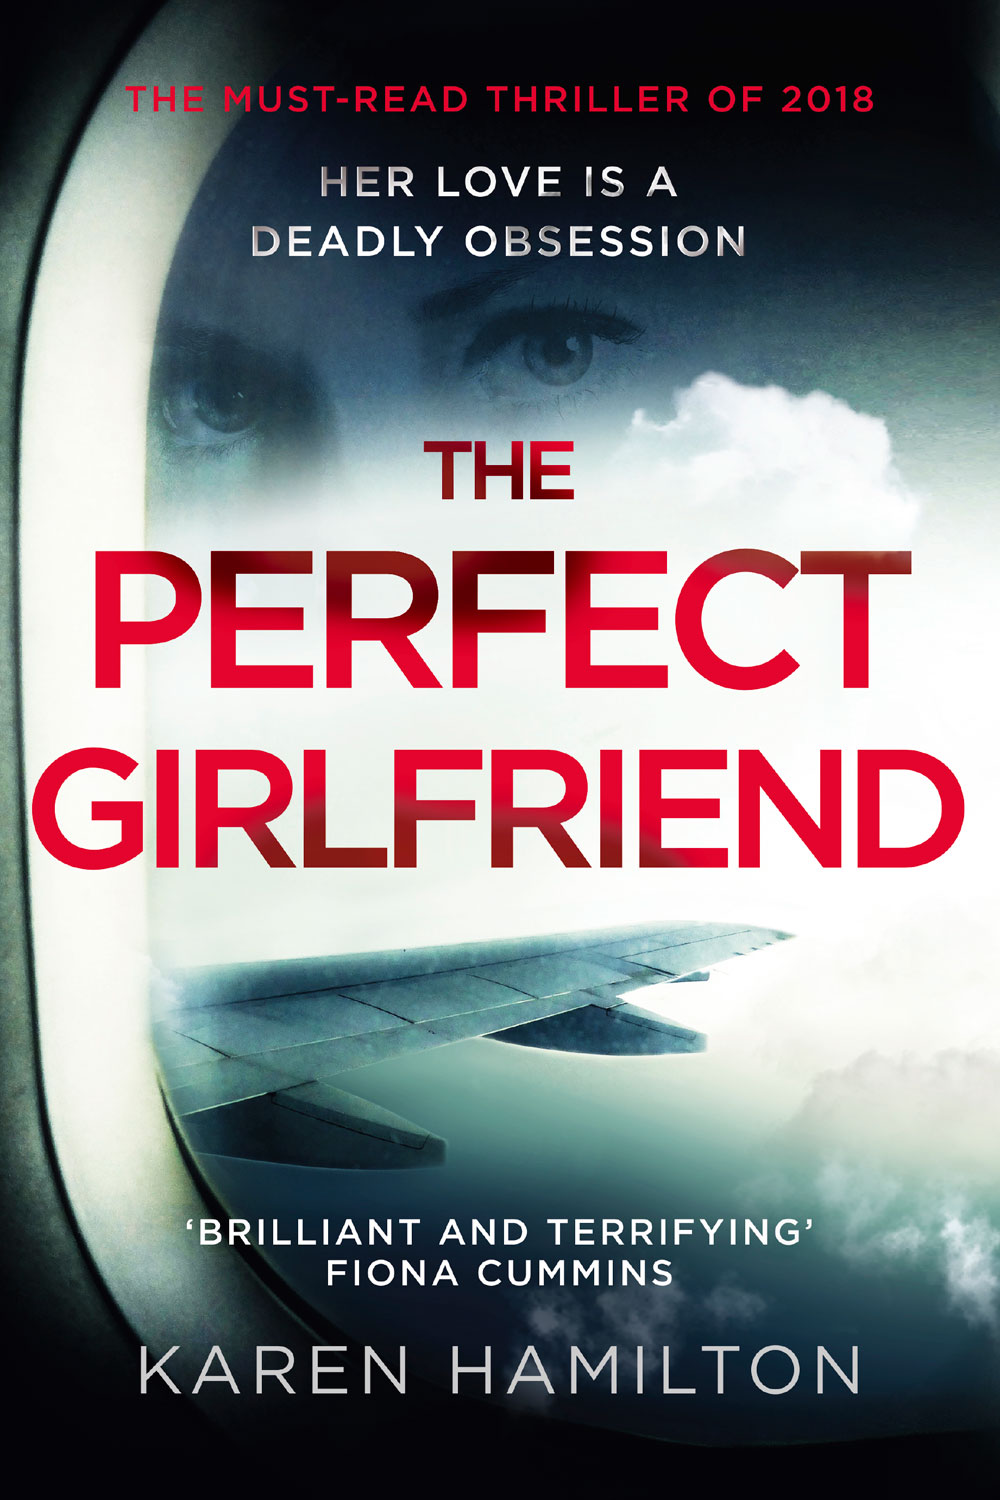 The-Perfect-Girlfriend-Karen-Hamilton